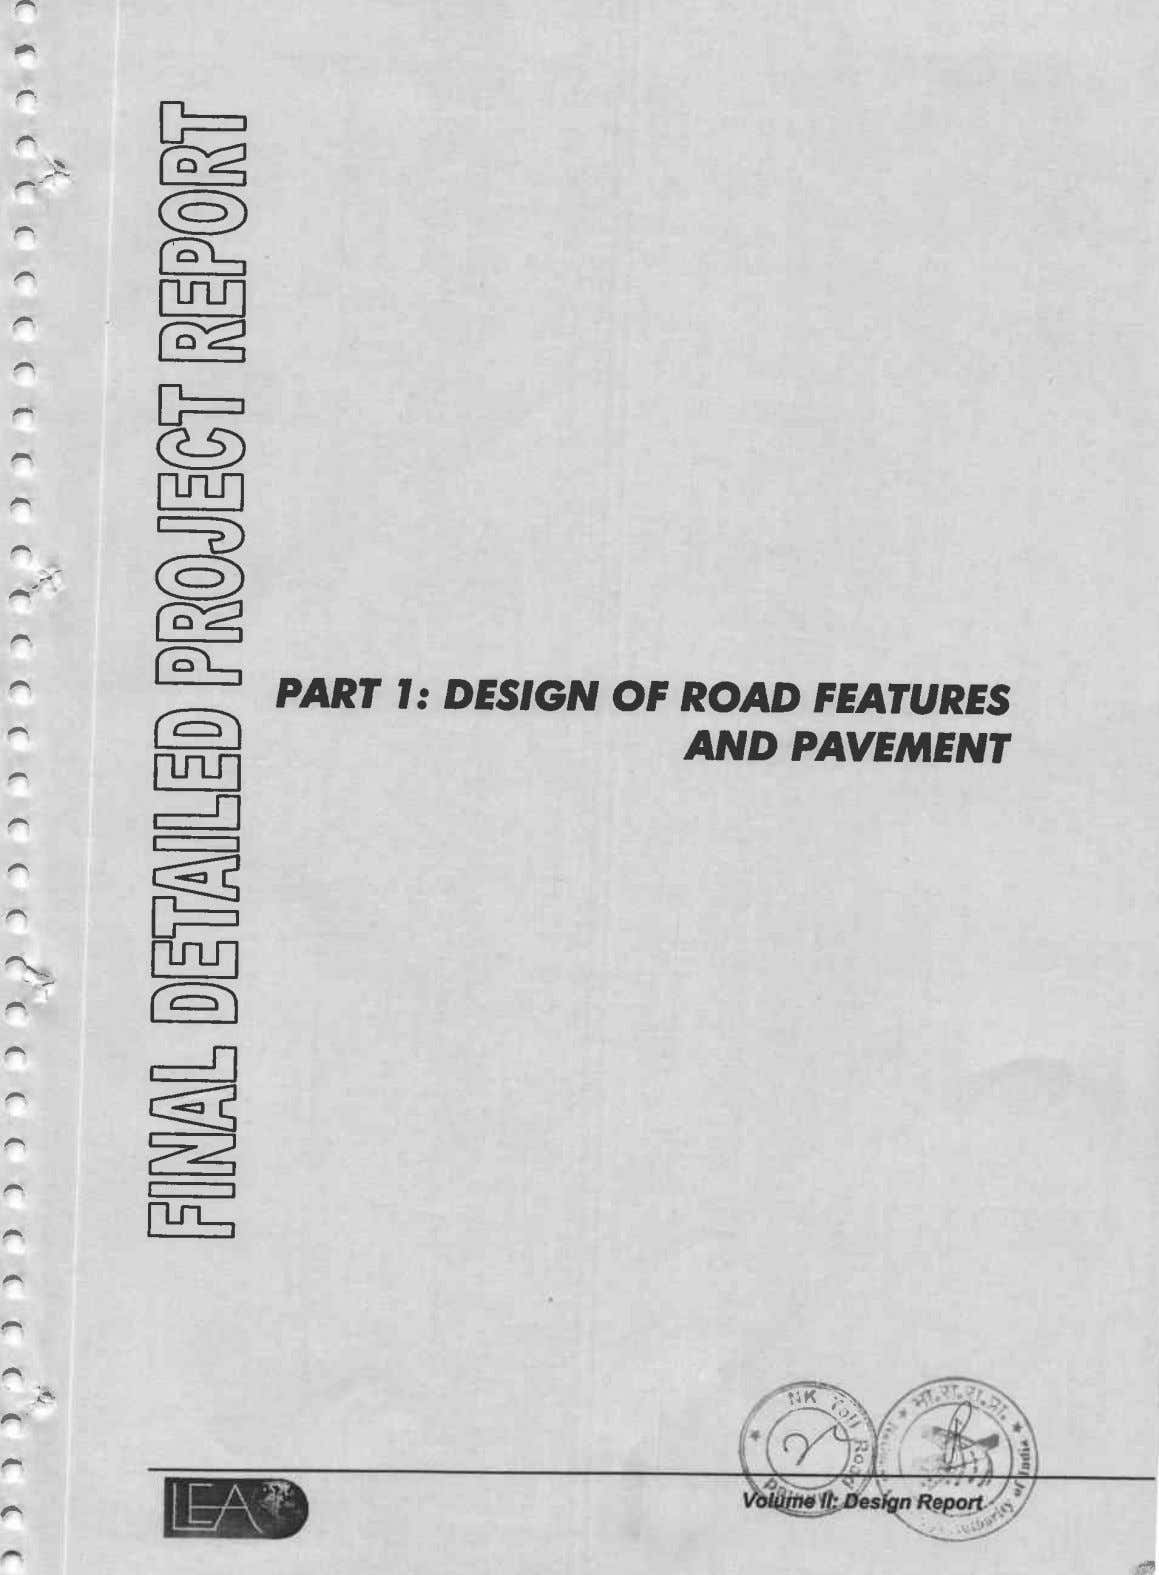 % @ To'rl CO'L, - PART I: DESlGAl OF ROAD FEATURES AND PAVEMENT